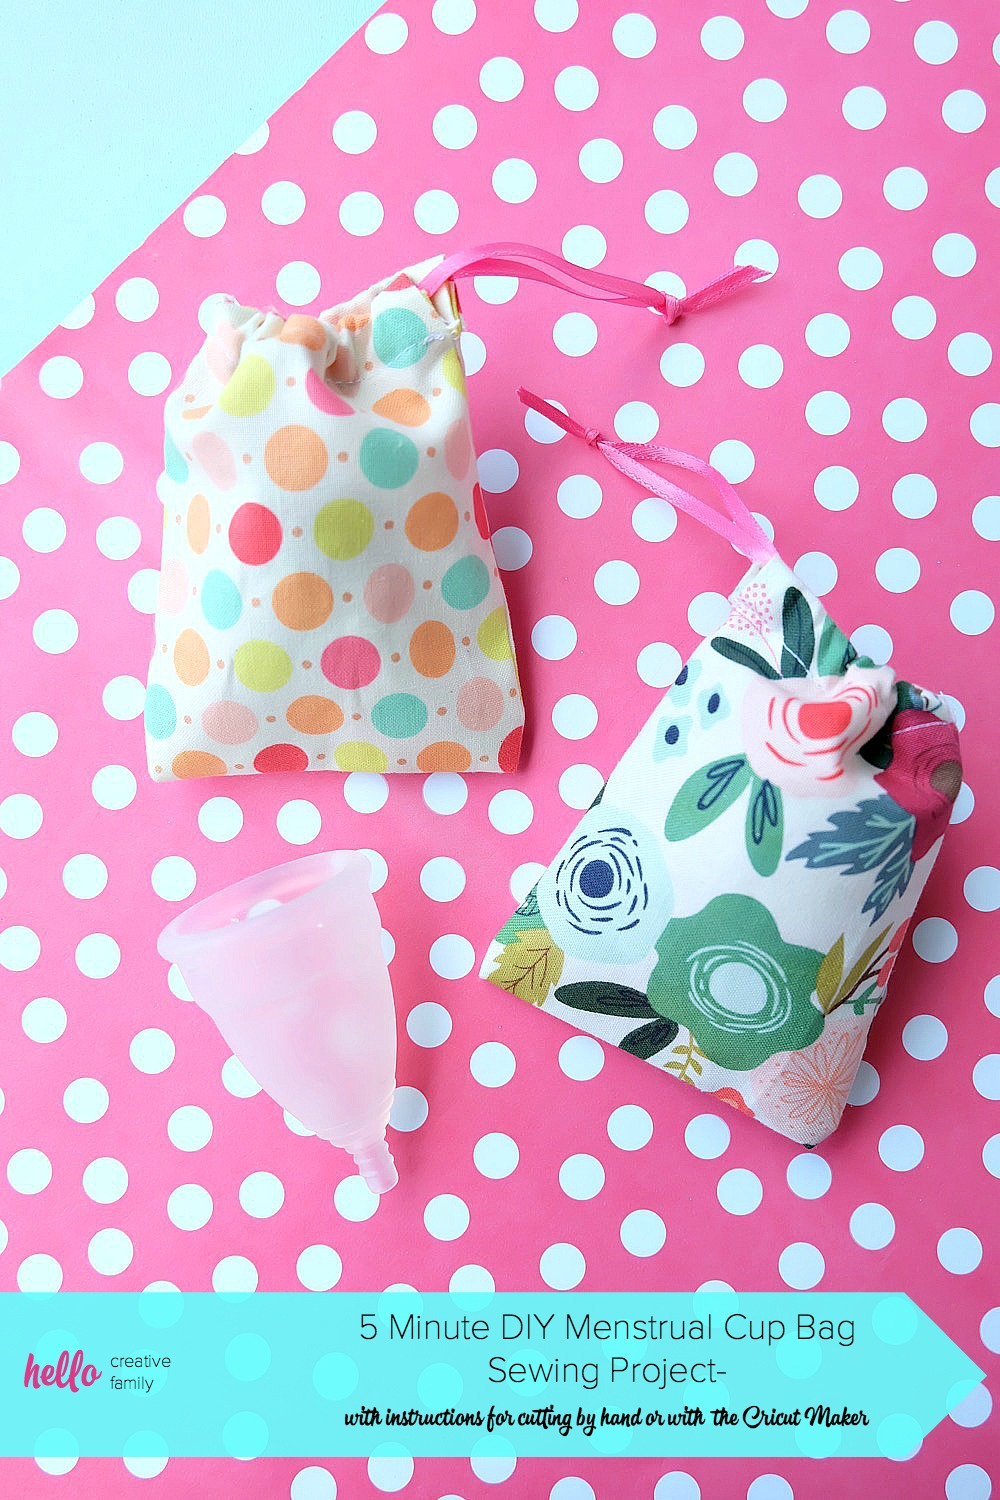 Lost the bag for your Diva Cup or other menstrual cup? Have no fear! We have a 5 minute menstrual cup bag sewing project that makes the cutest little drawstring bag. The perfect fabric scrap project! It's quick and easy to make! Cut it by hand or with the Cricut Maker. Once you know how to make them change the sizes for fabric gift bags, gift card bags, jewelry bags and more! #Sewing #5minutesewingproject #Cricut #CricutMaker